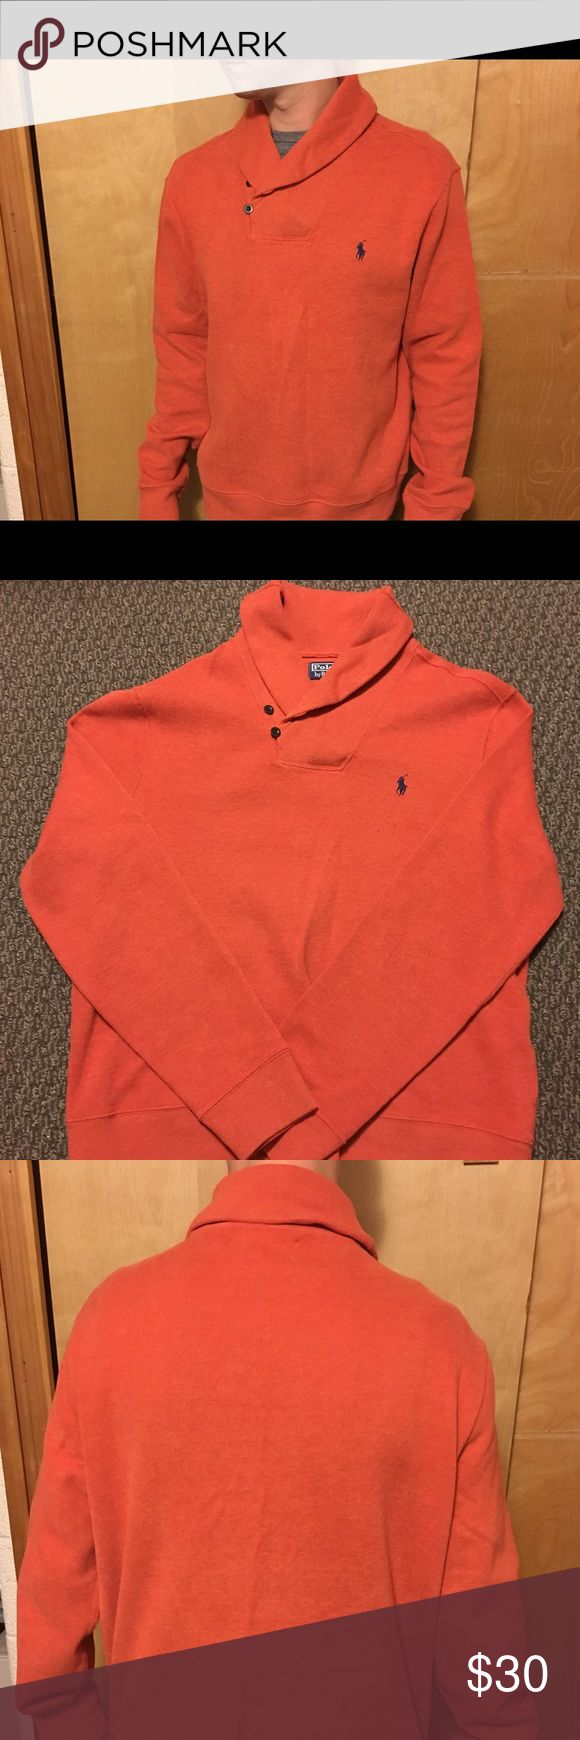 Very nice and classy Ralph Lauren polo sweater. This is like brand new. No flaws and very well could have never been worn at all. These are not cheap as I'm sure you know New from RL. Stay classy San Diego with this delightful treat from polos classic sweater collection. Xl but fits Like a large. Polo by Ralph Lauren Shirts Sweatshirts & Hoodies